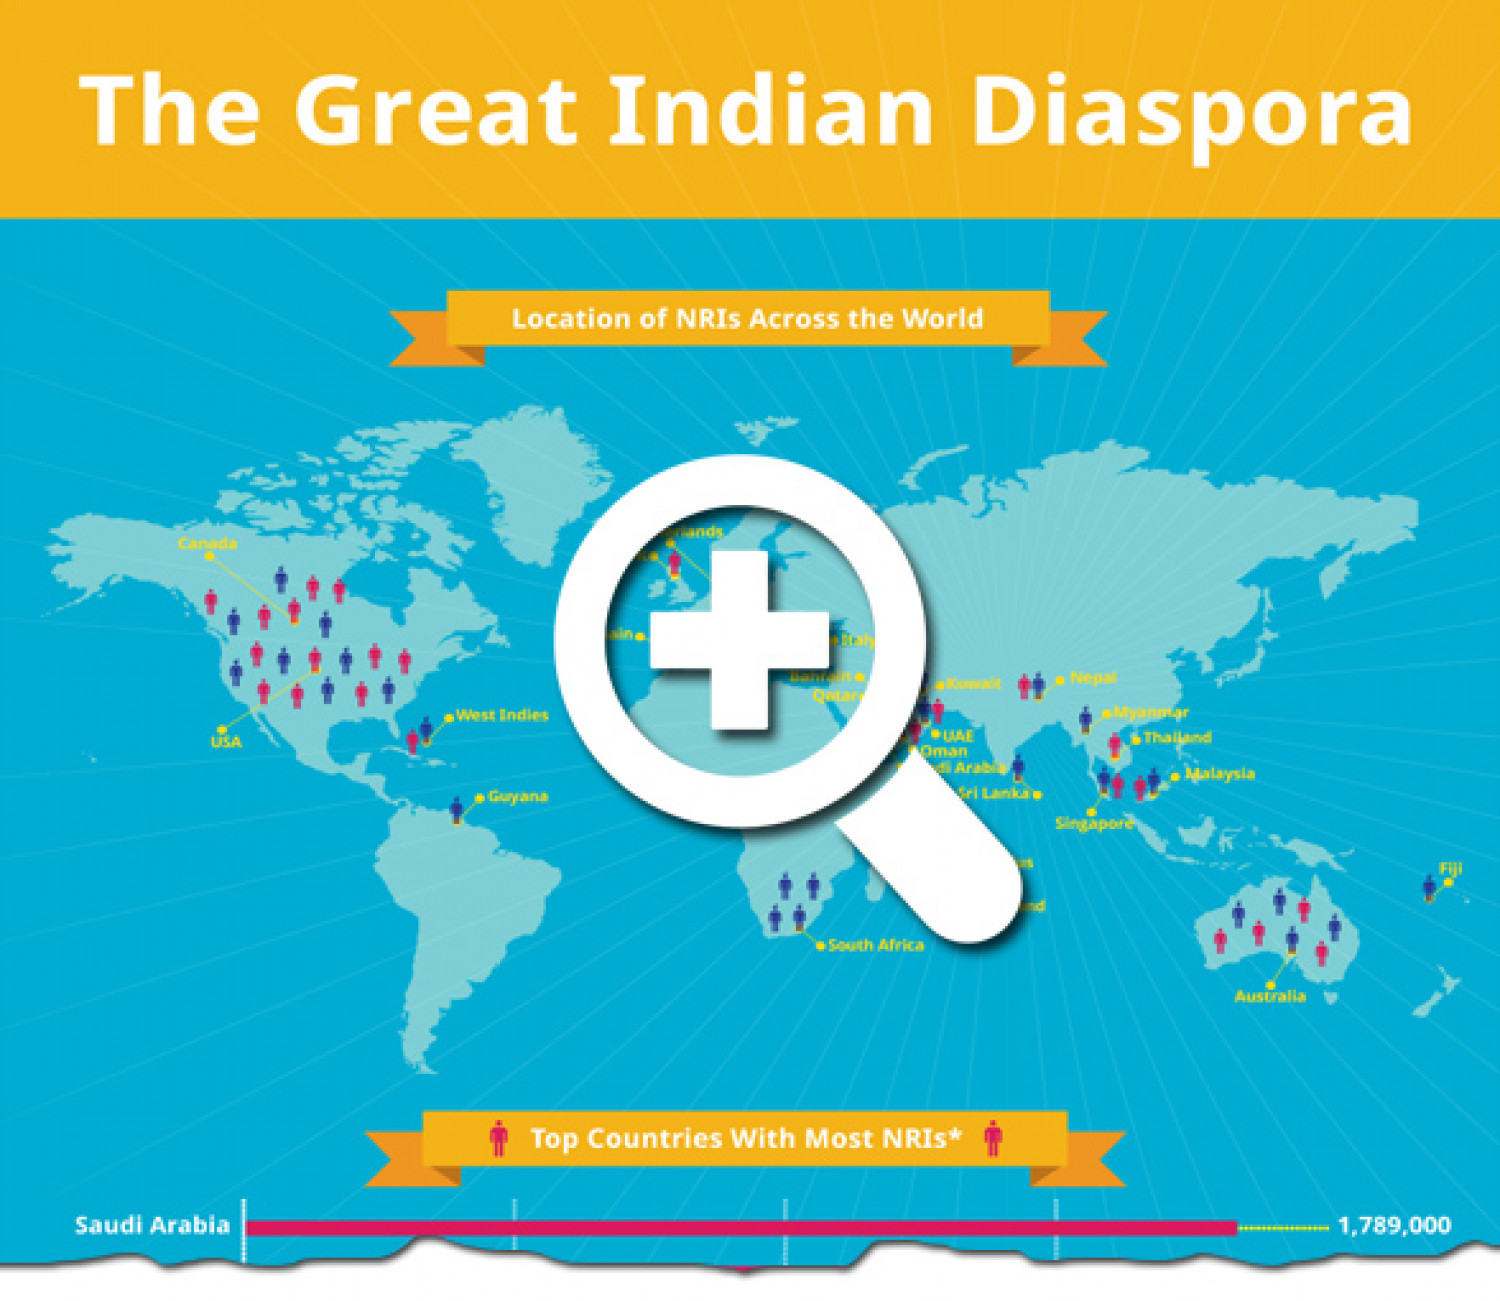 The Great Indian Diaspora Infographic